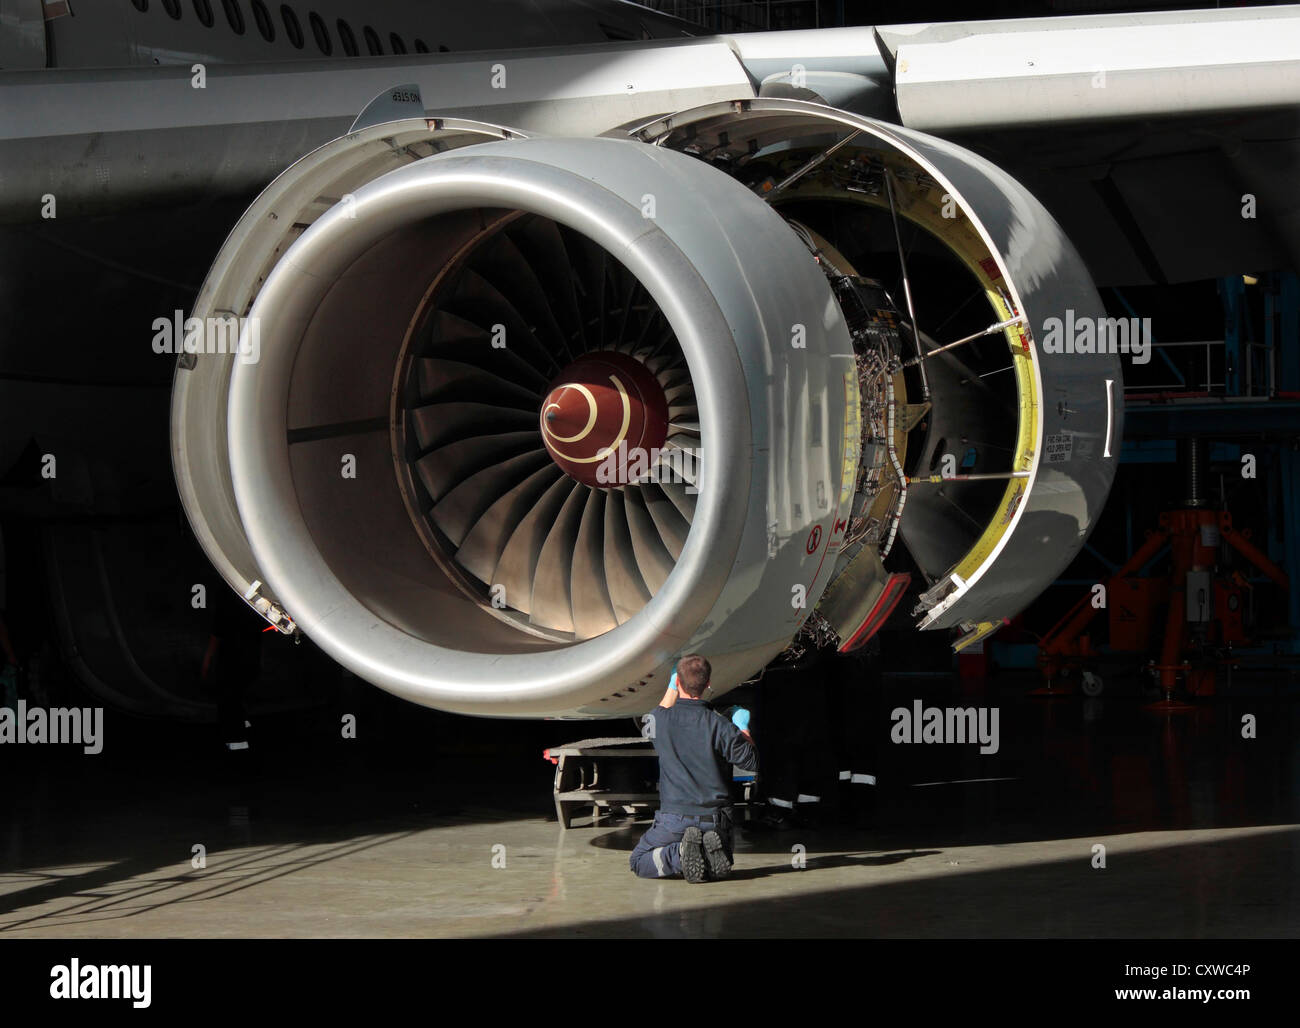 Rolls-Royce Trent 500 jet engine on an Airbus A340-600 airliner undergoing maintenance. Aviation engineering, high - Stock Image